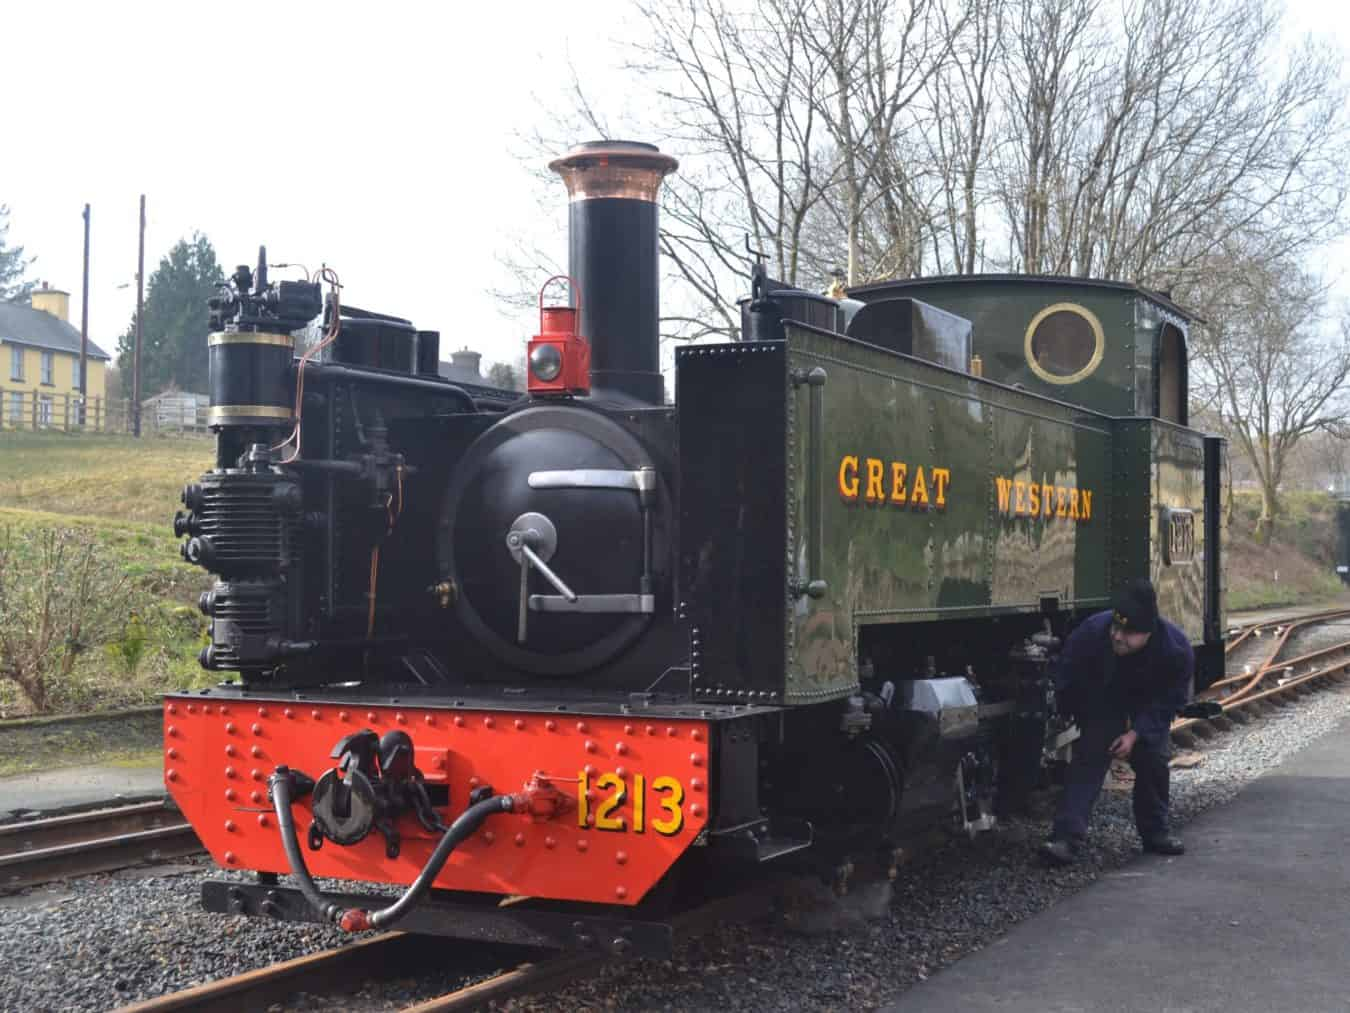 A narrow gauge steam engine being tended by the driver